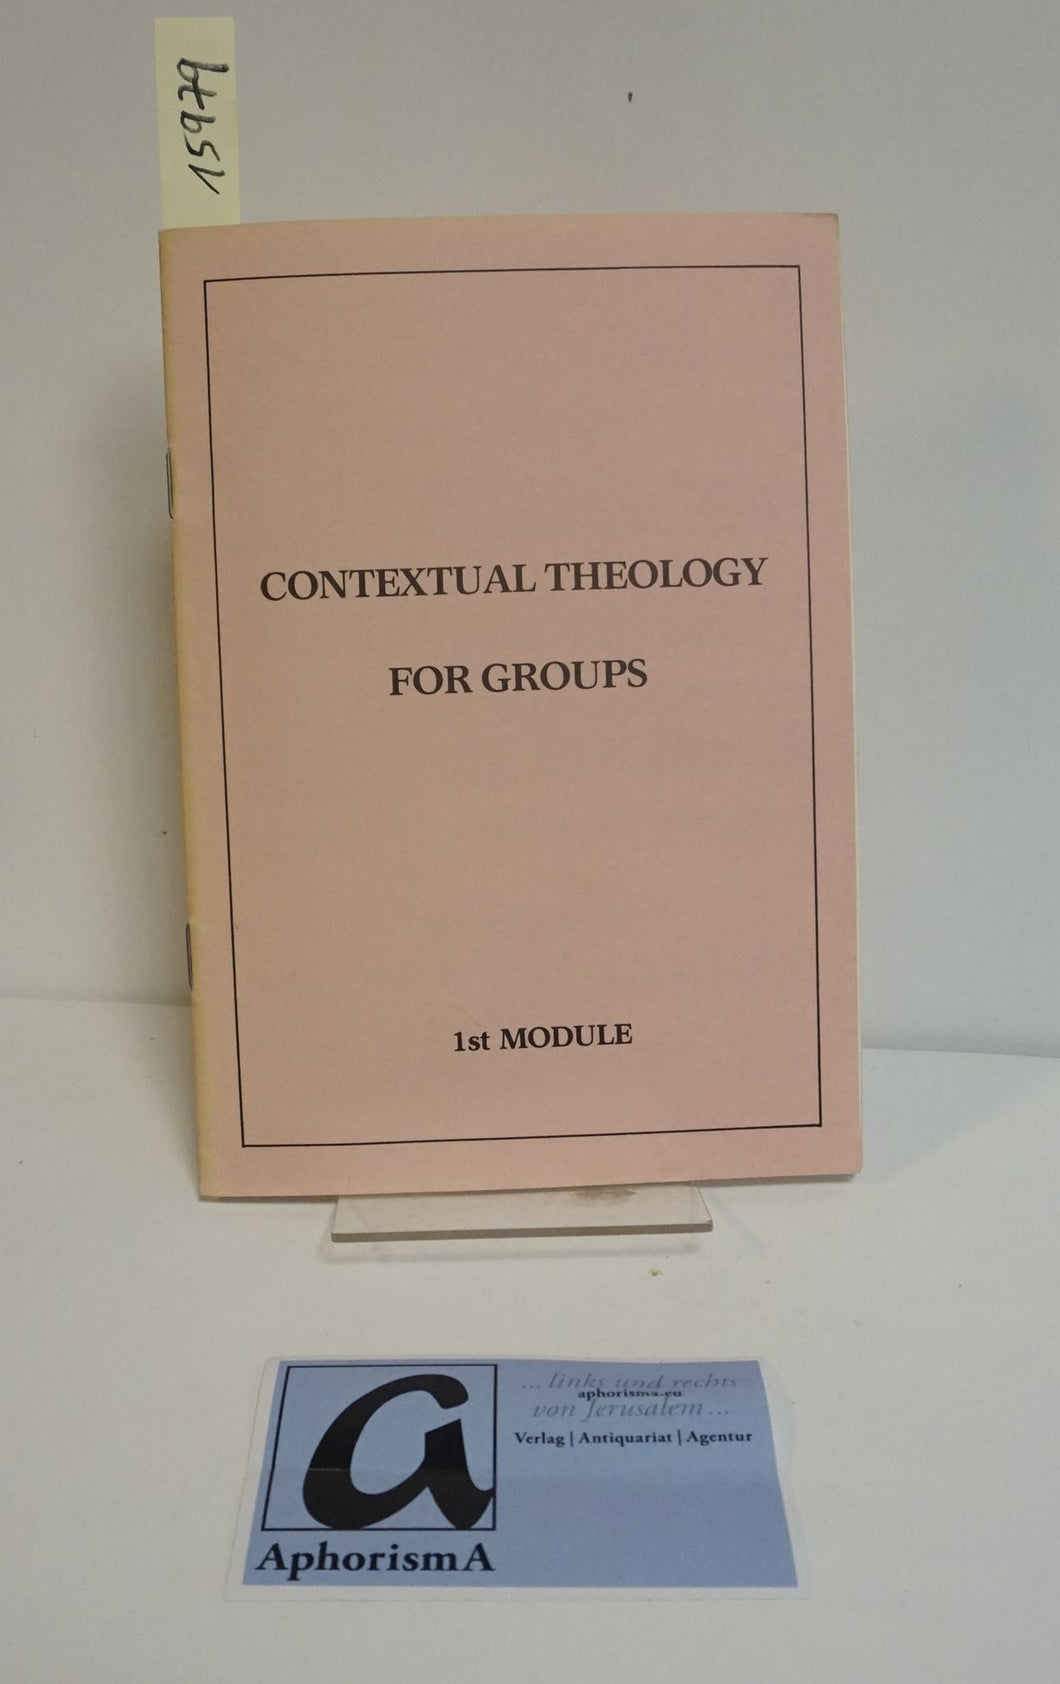 Contextual Theology for Groups